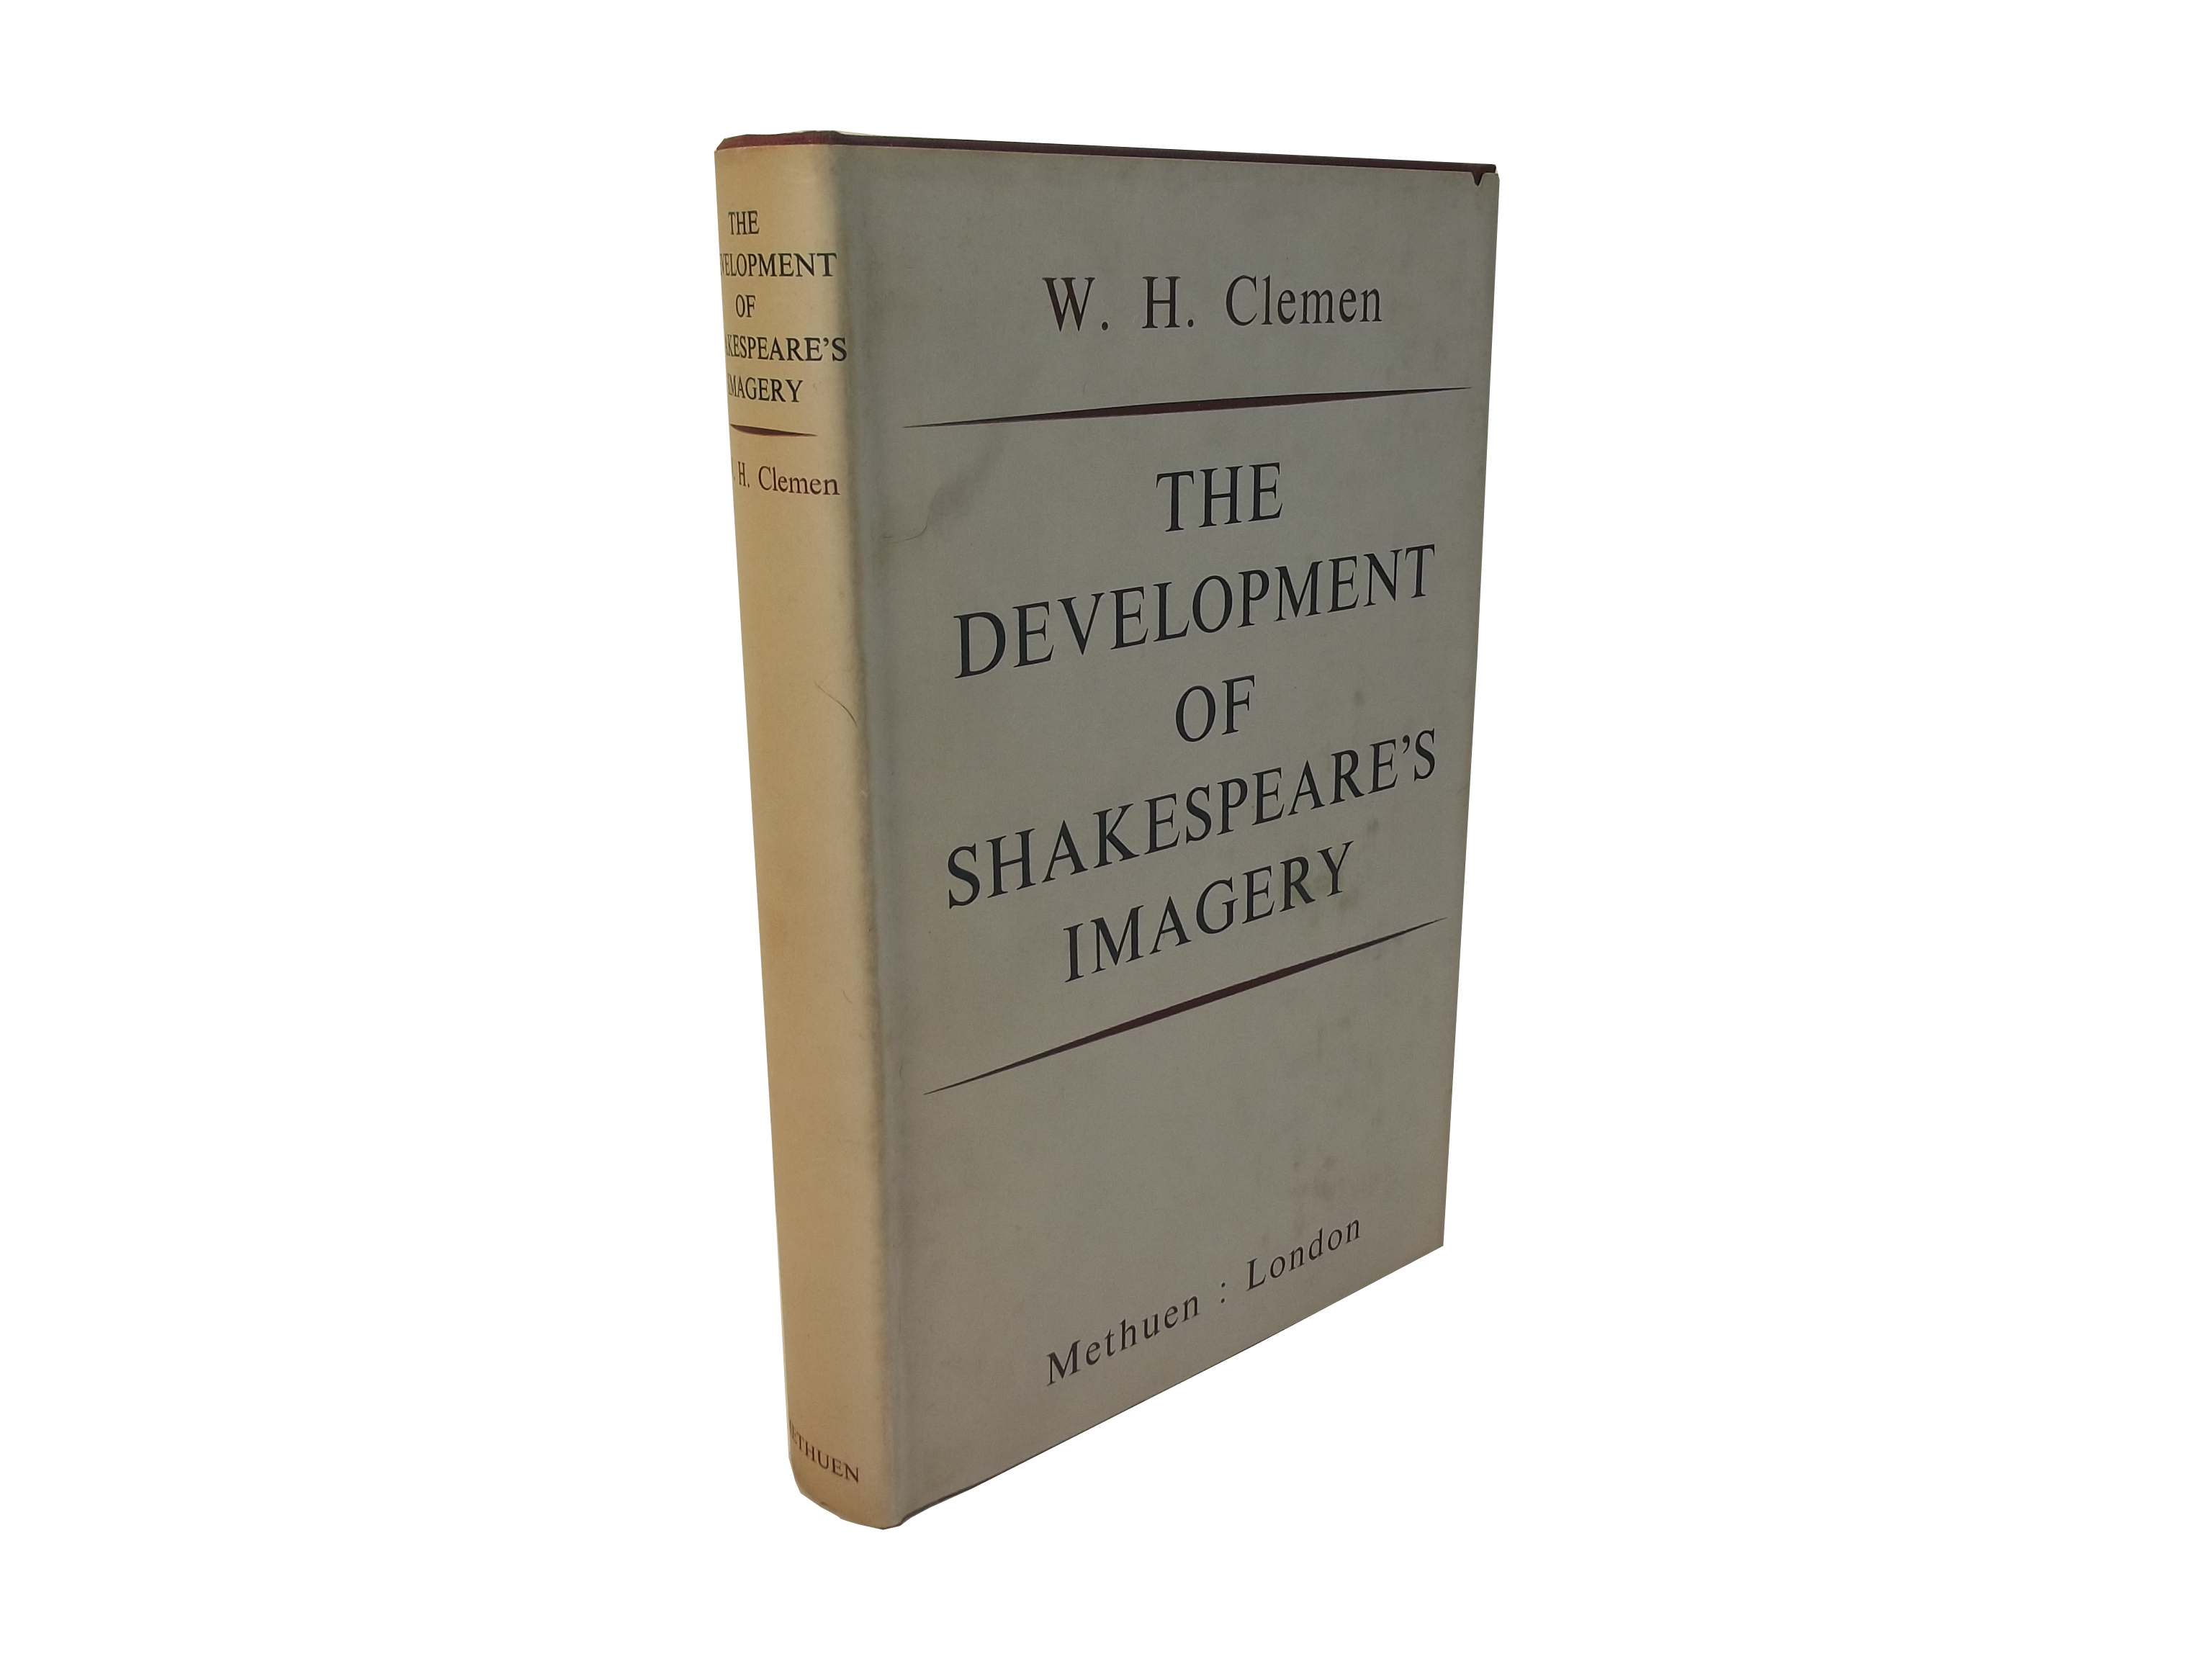 Development of Shakespeare's Imagery